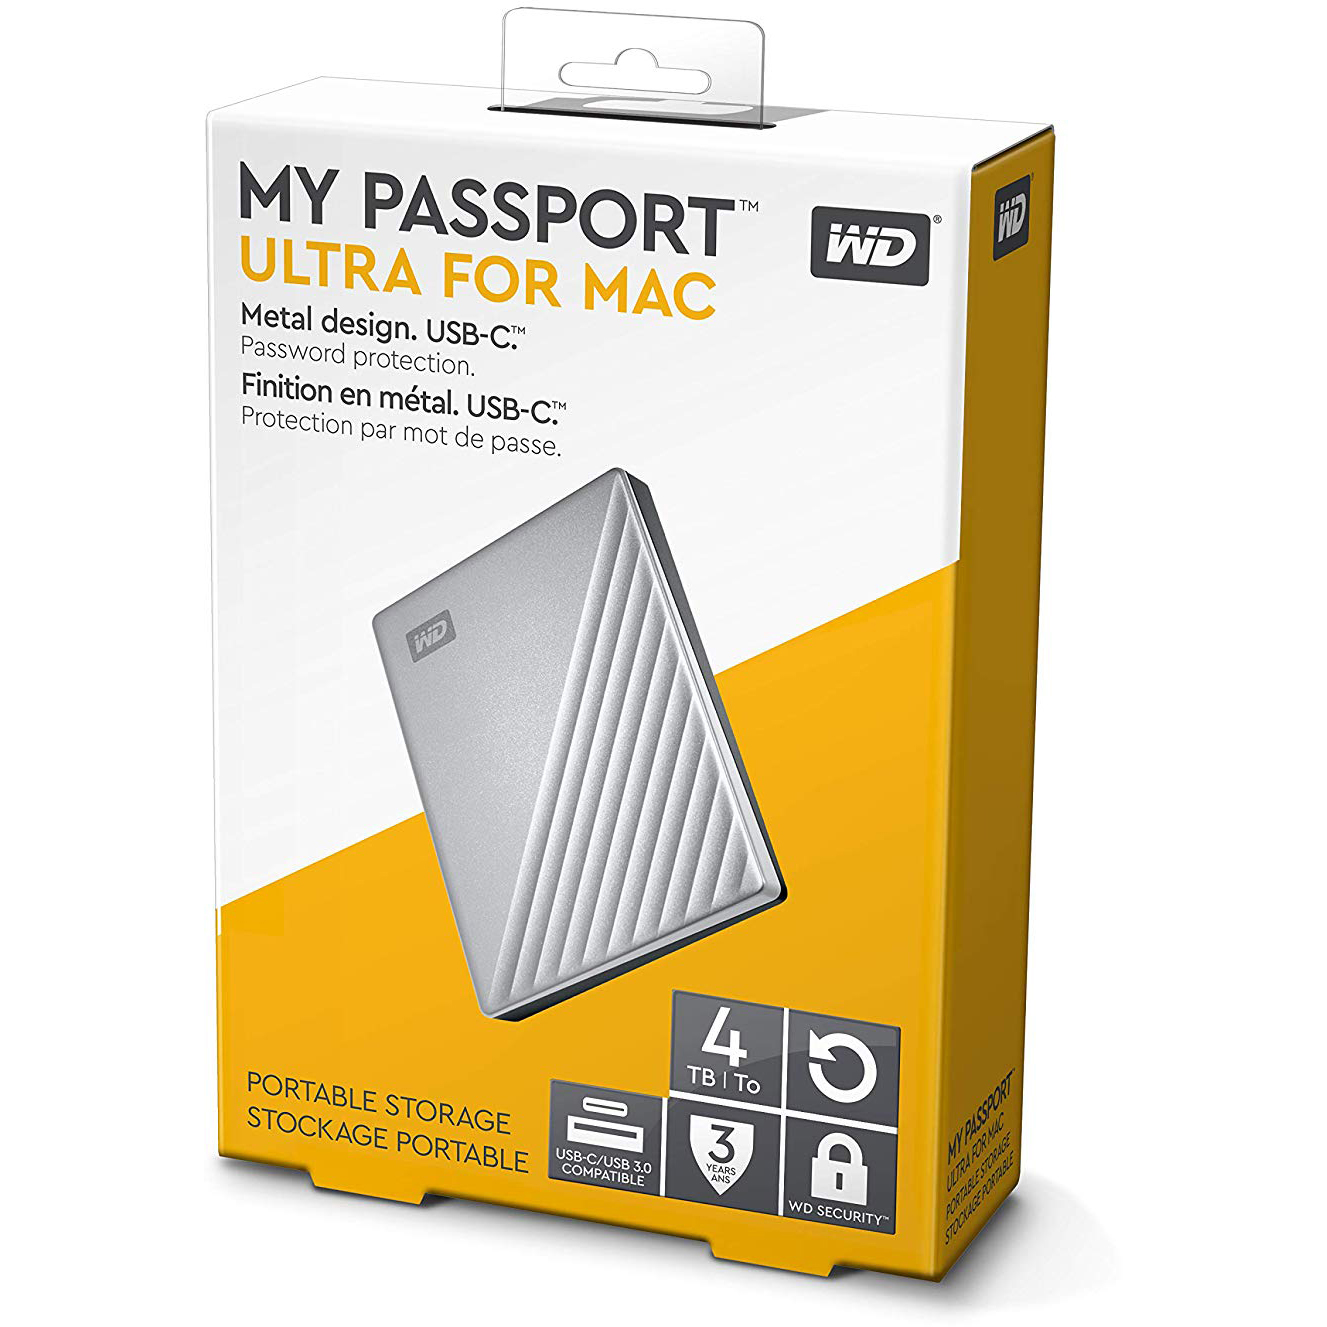 Original Western Digital My Passport Ultra 4TB USB 3.0 External Hard Drive (WDBPMV0040BSL-WESN)